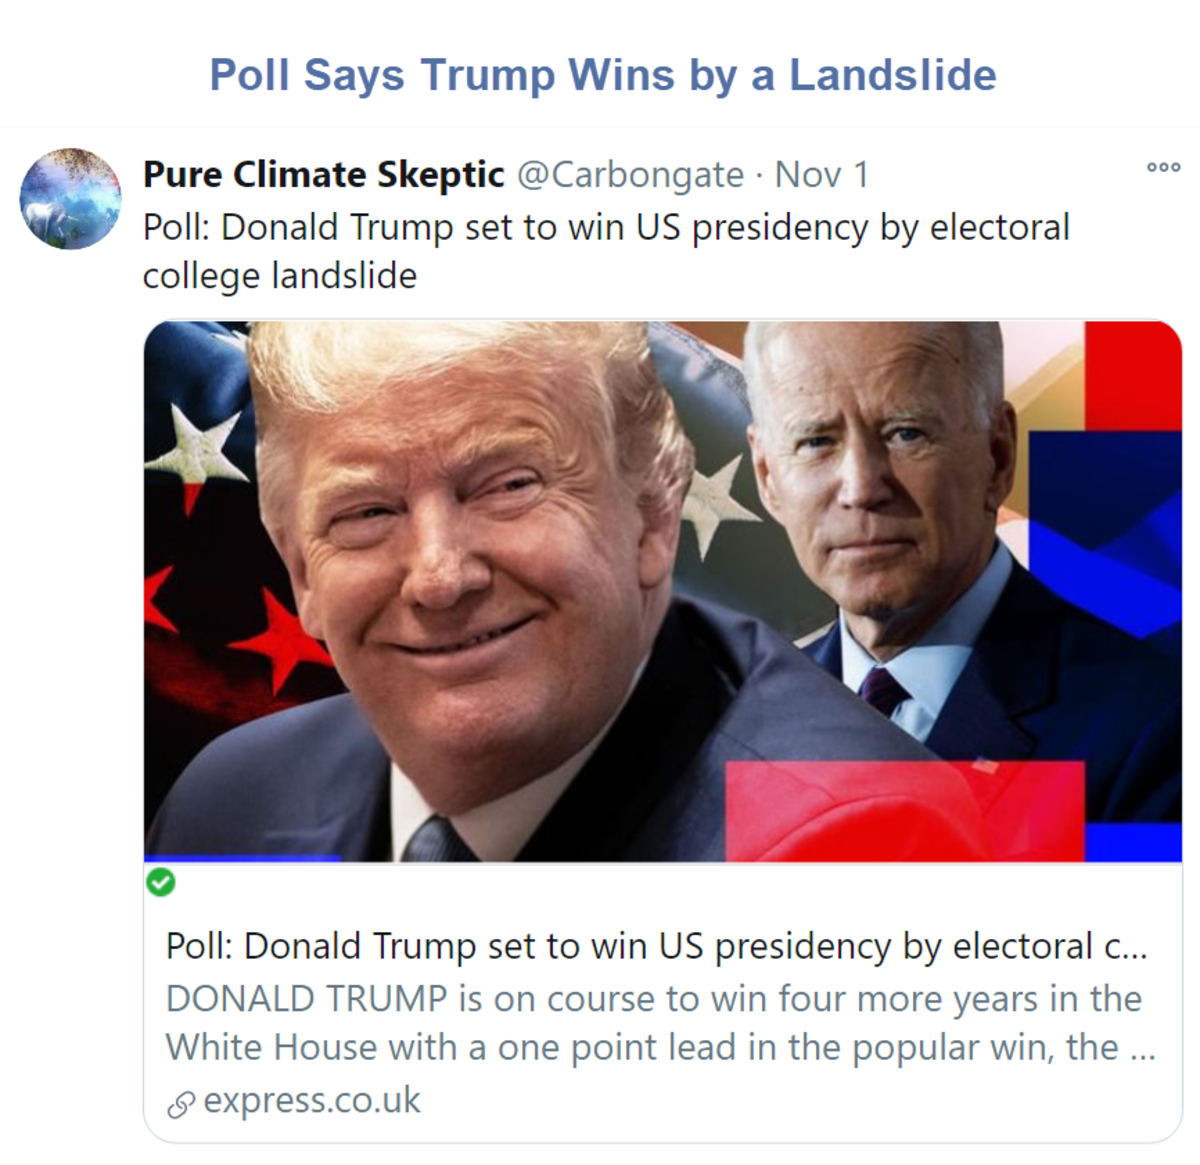 Poll Says Trump Wins by a Landslide